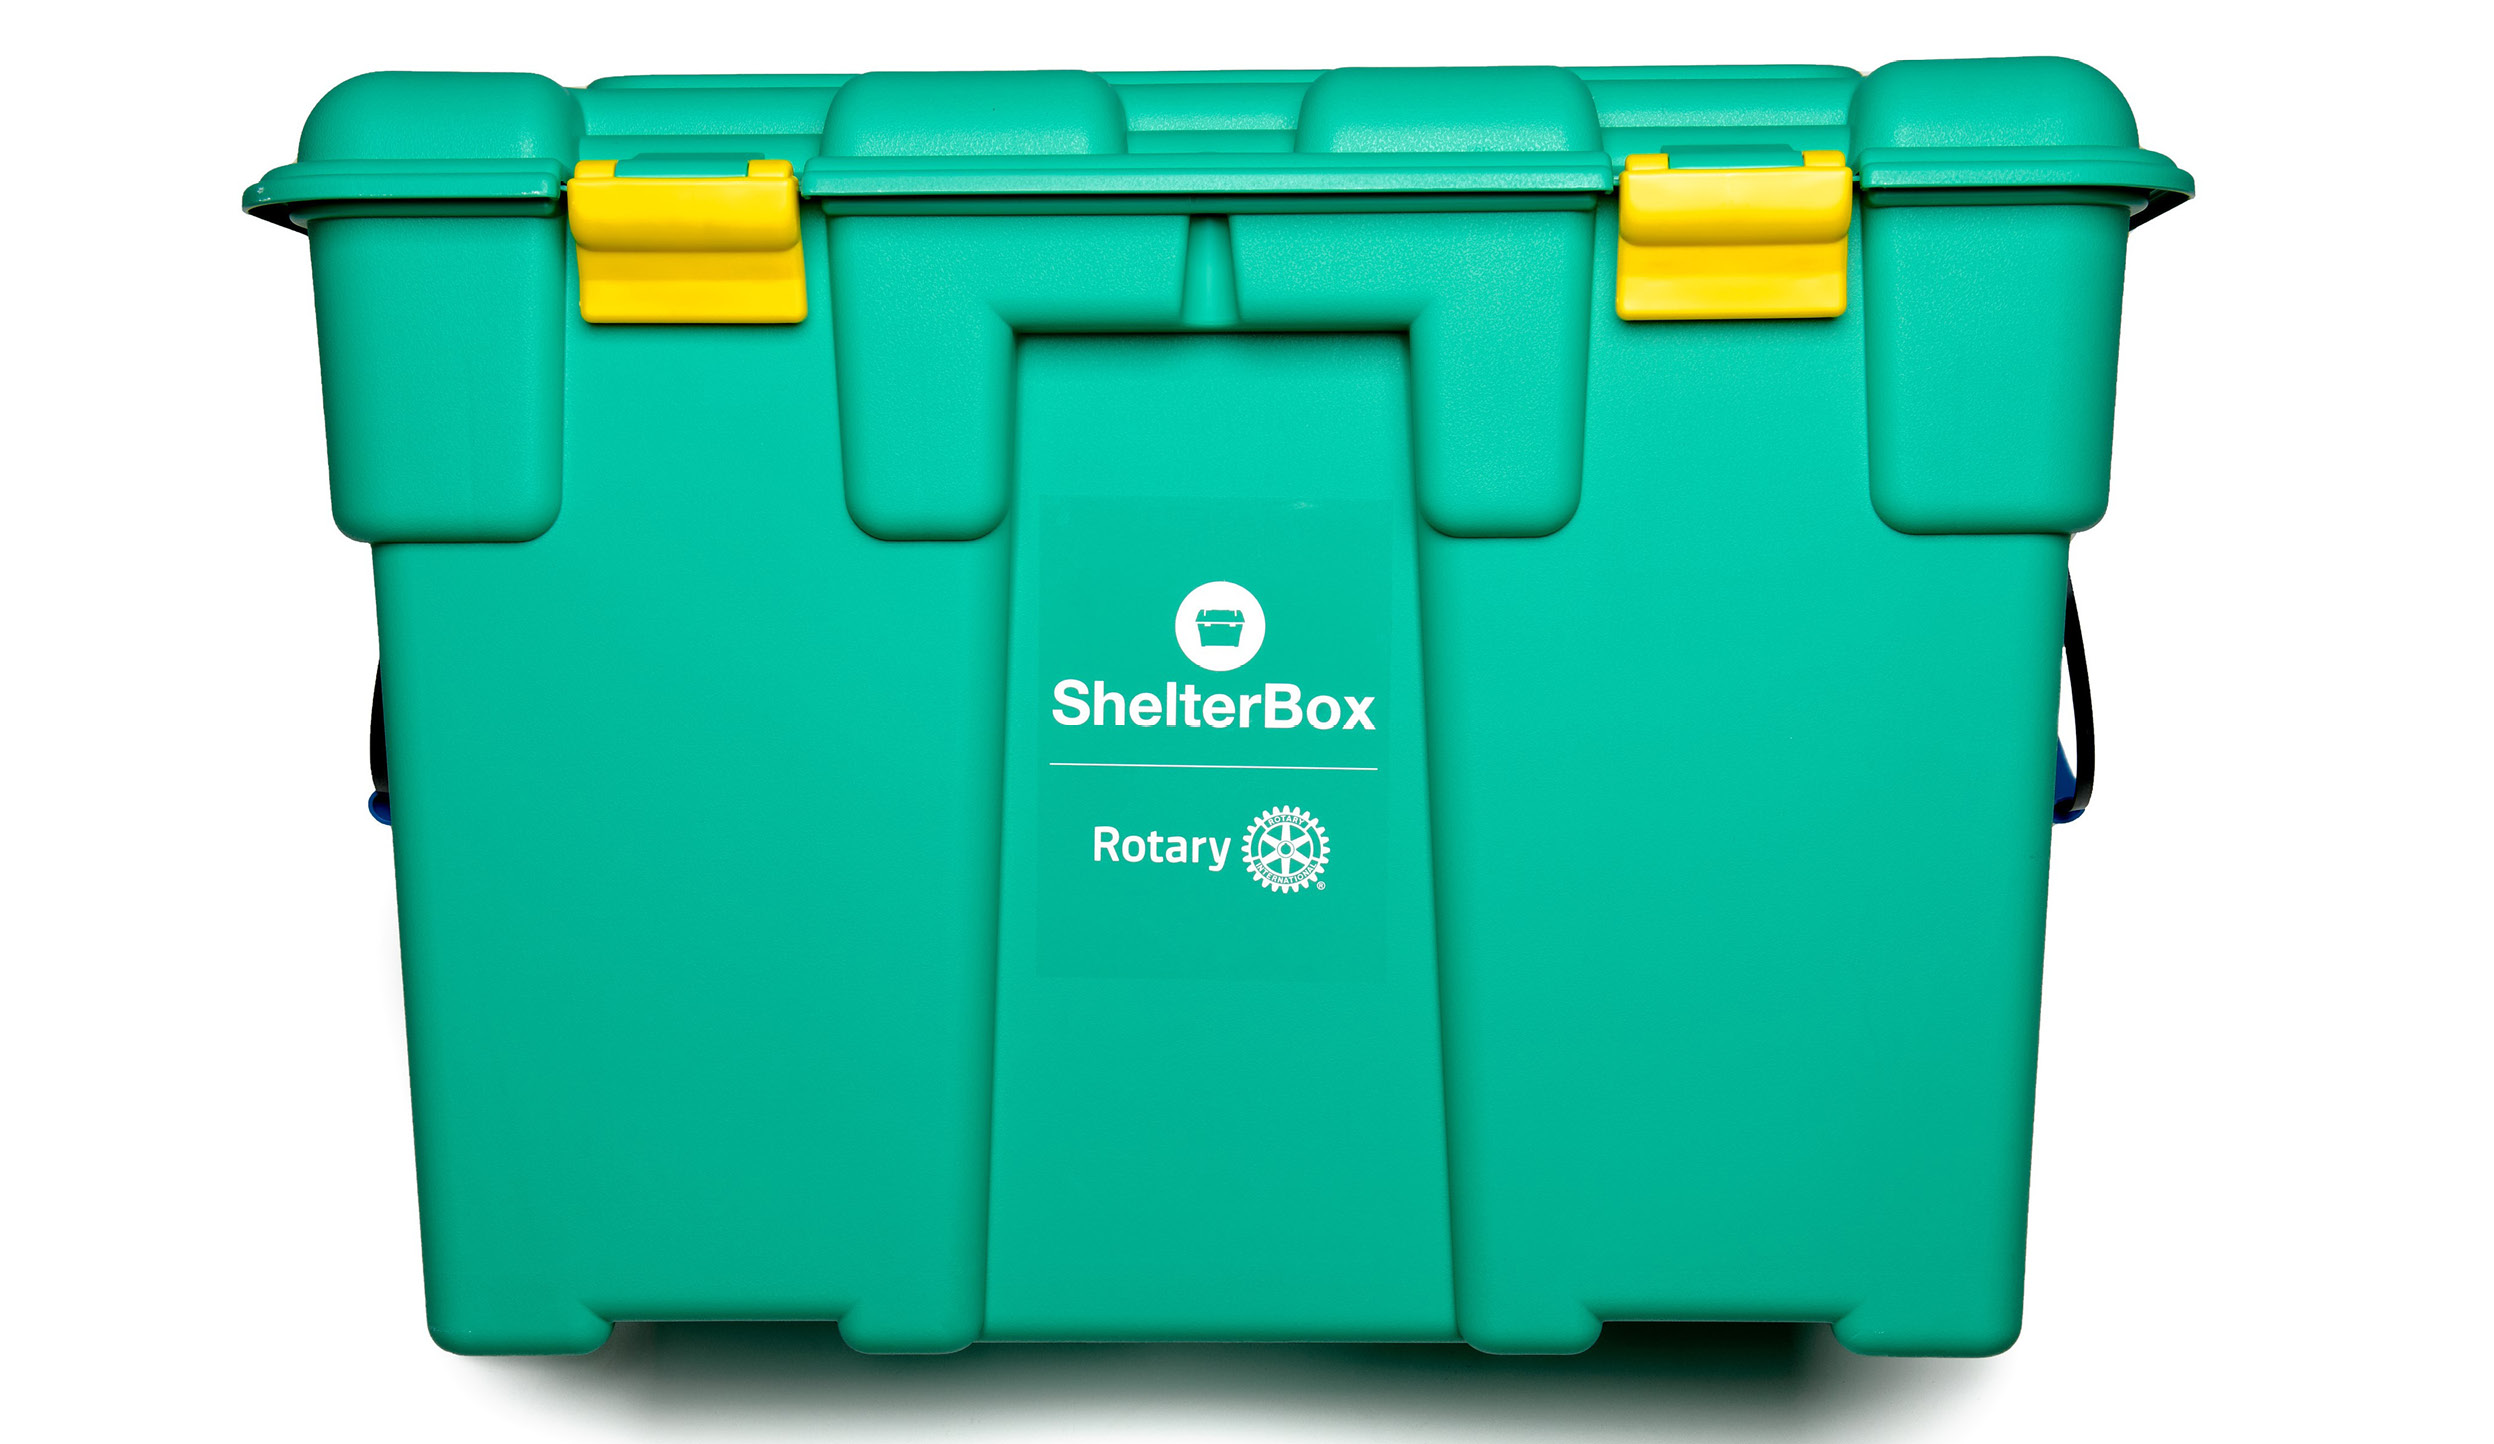 Green ShelterBox